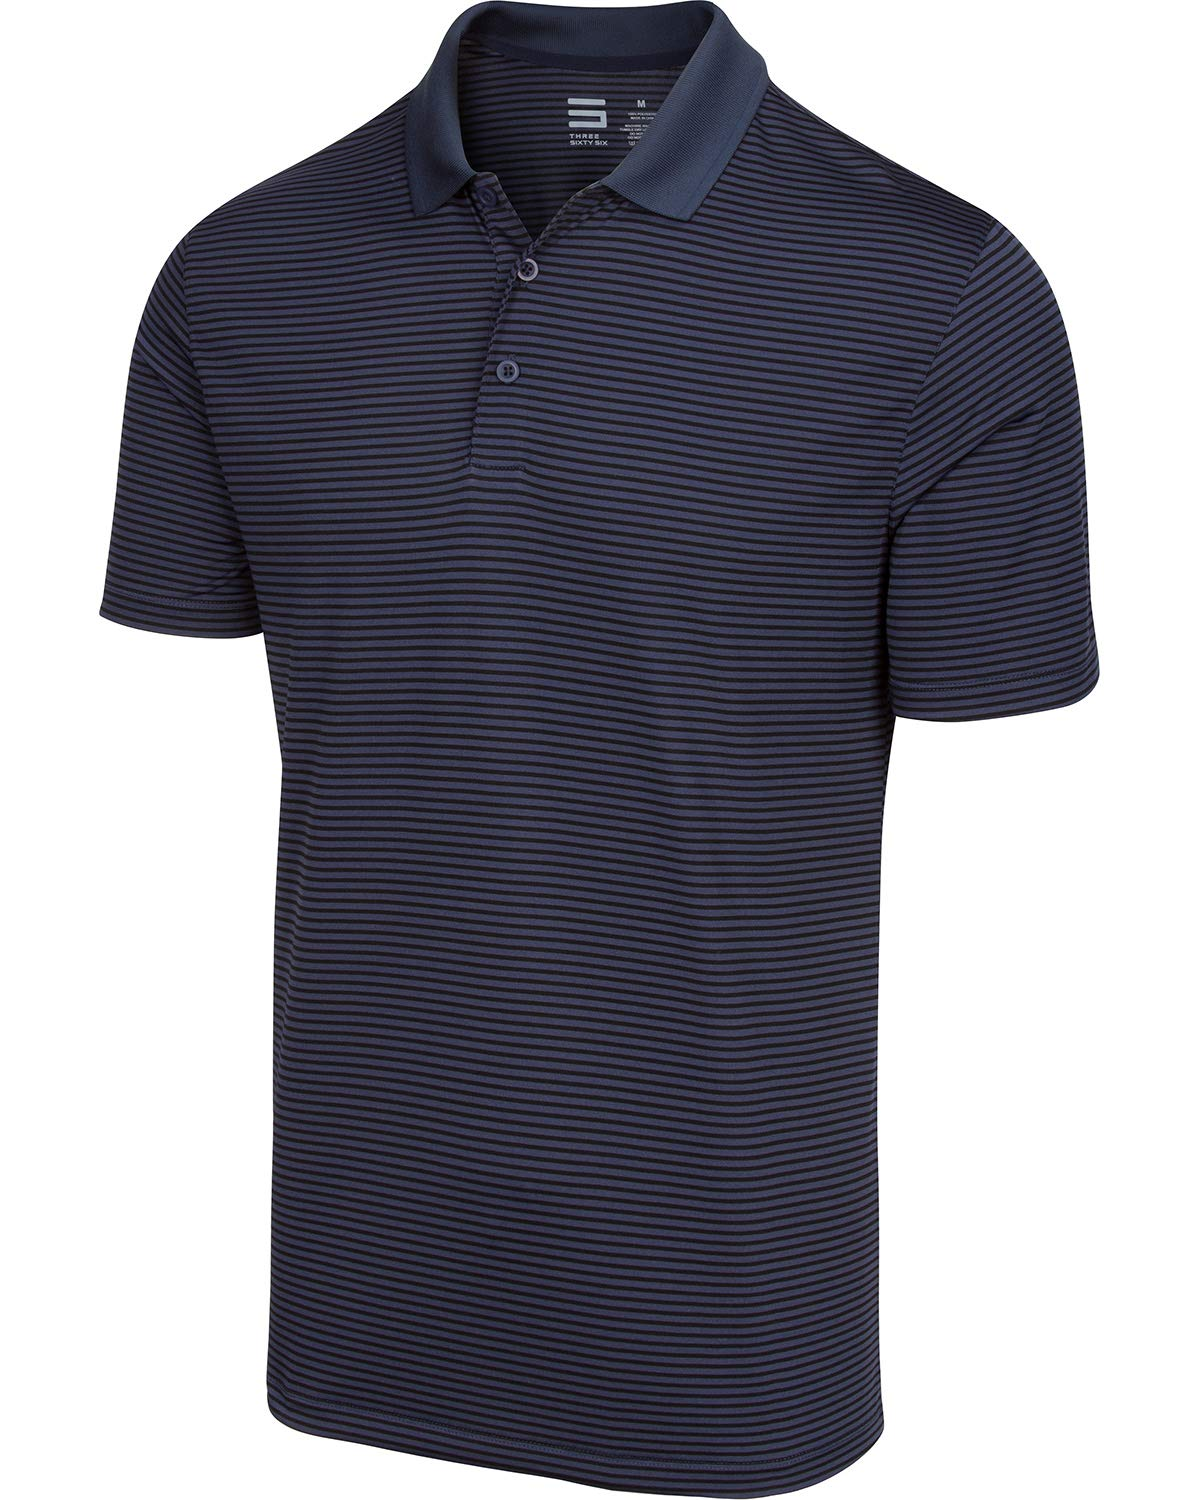 Dry Fit Golf Shirts for Men - Short Sleeve Mens Stripe Polo Shirt